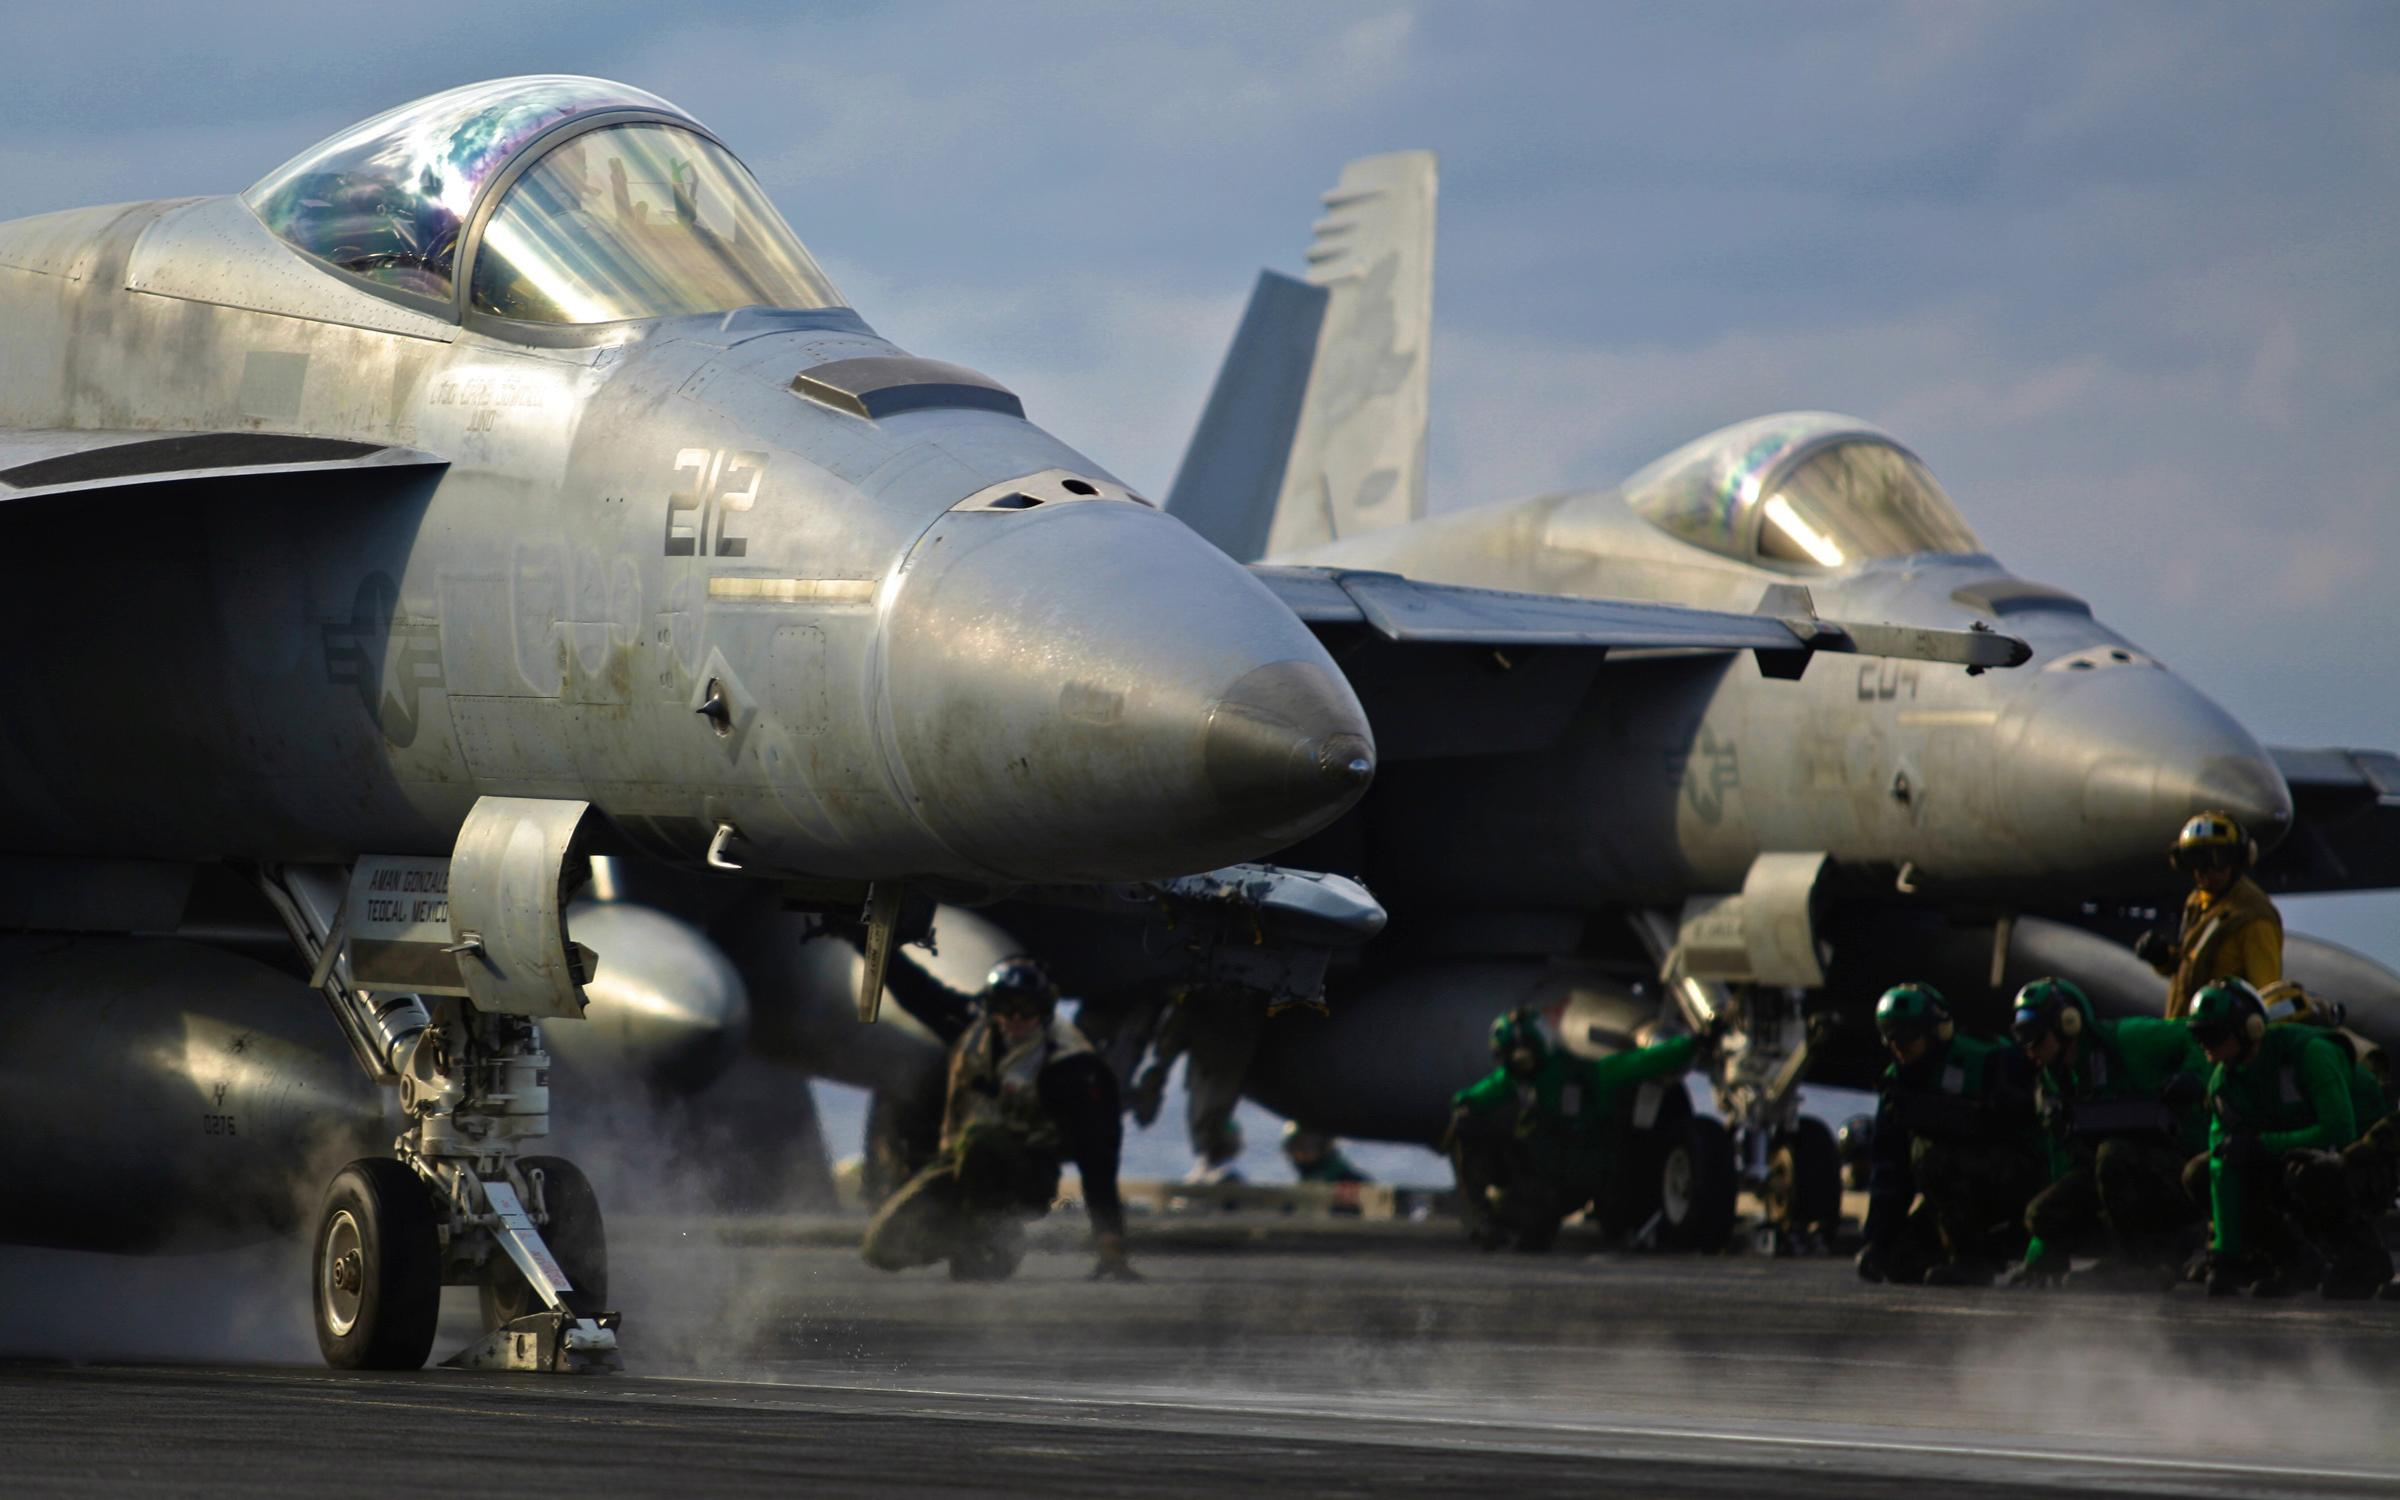 U.S. Navy F-18 Super Hornet (U.S. Navy photo by Aviation Electrician Technician Airman Josiah Connelly /Released)